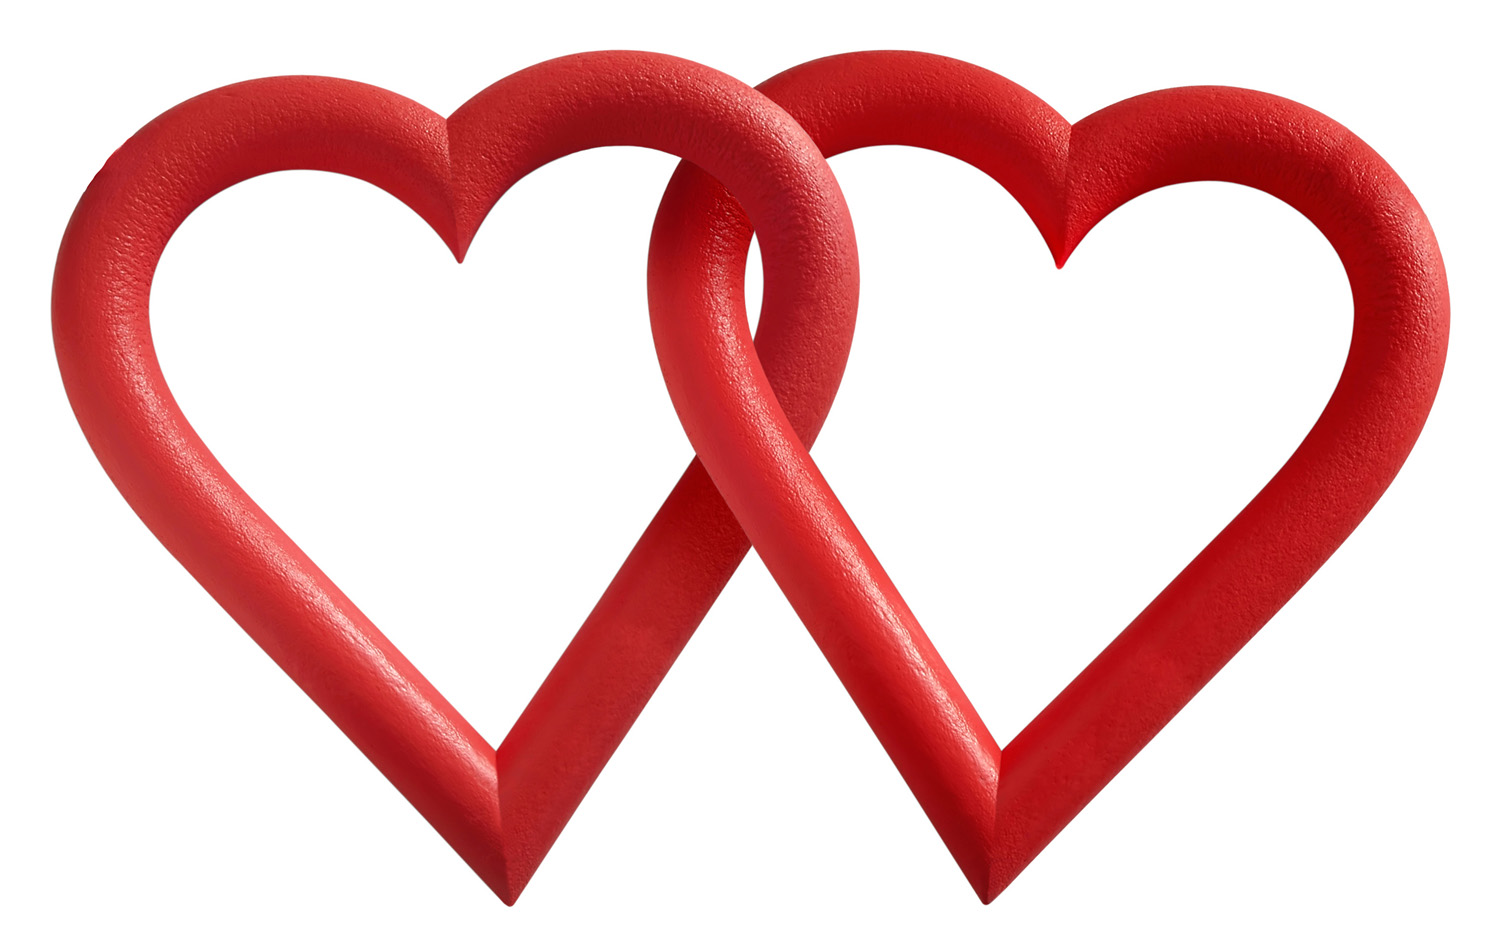 Two Hearts Together - ClipArt Best